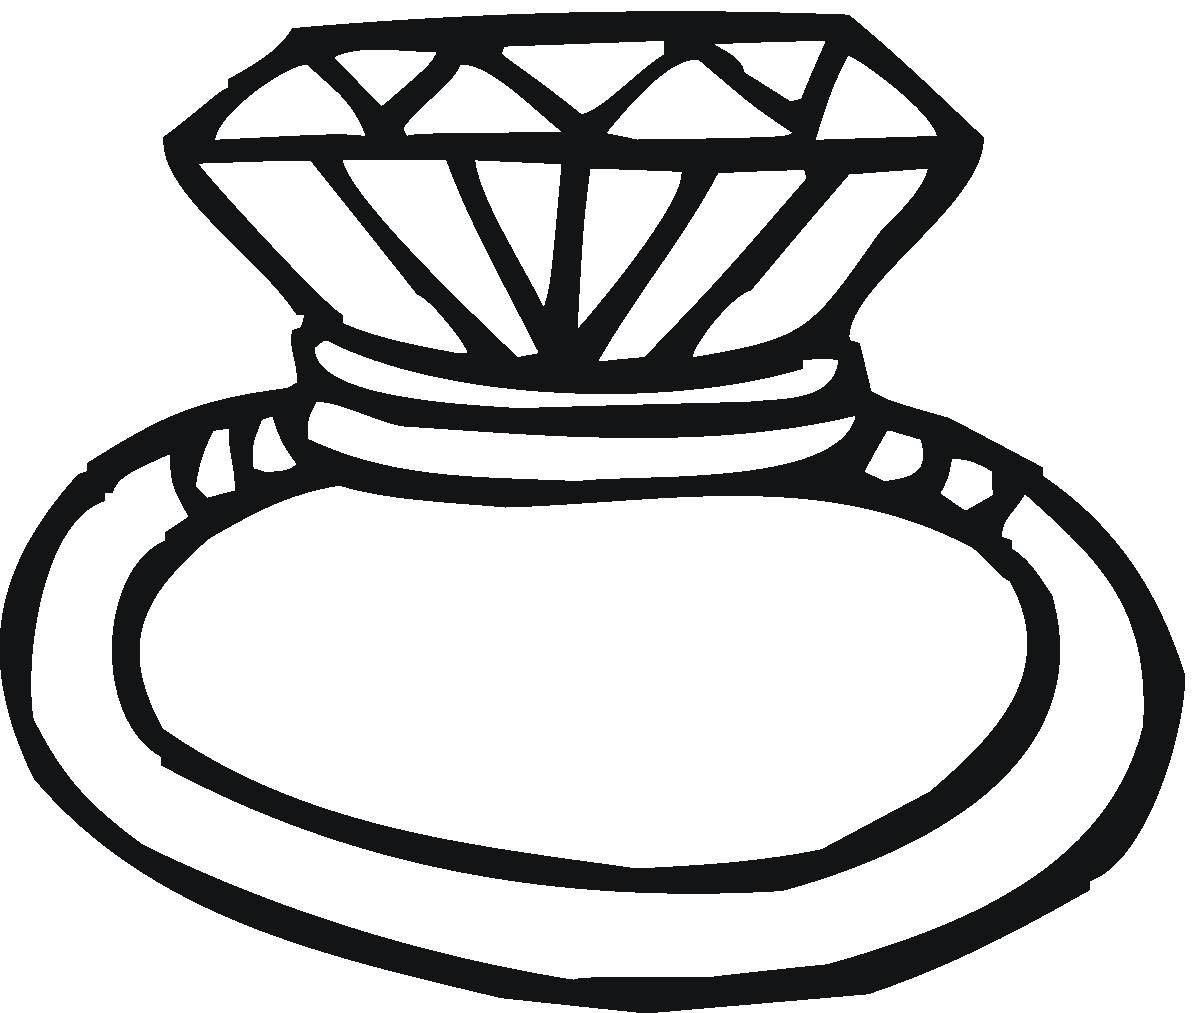 Art wedding rings ring clipart black and white clip.